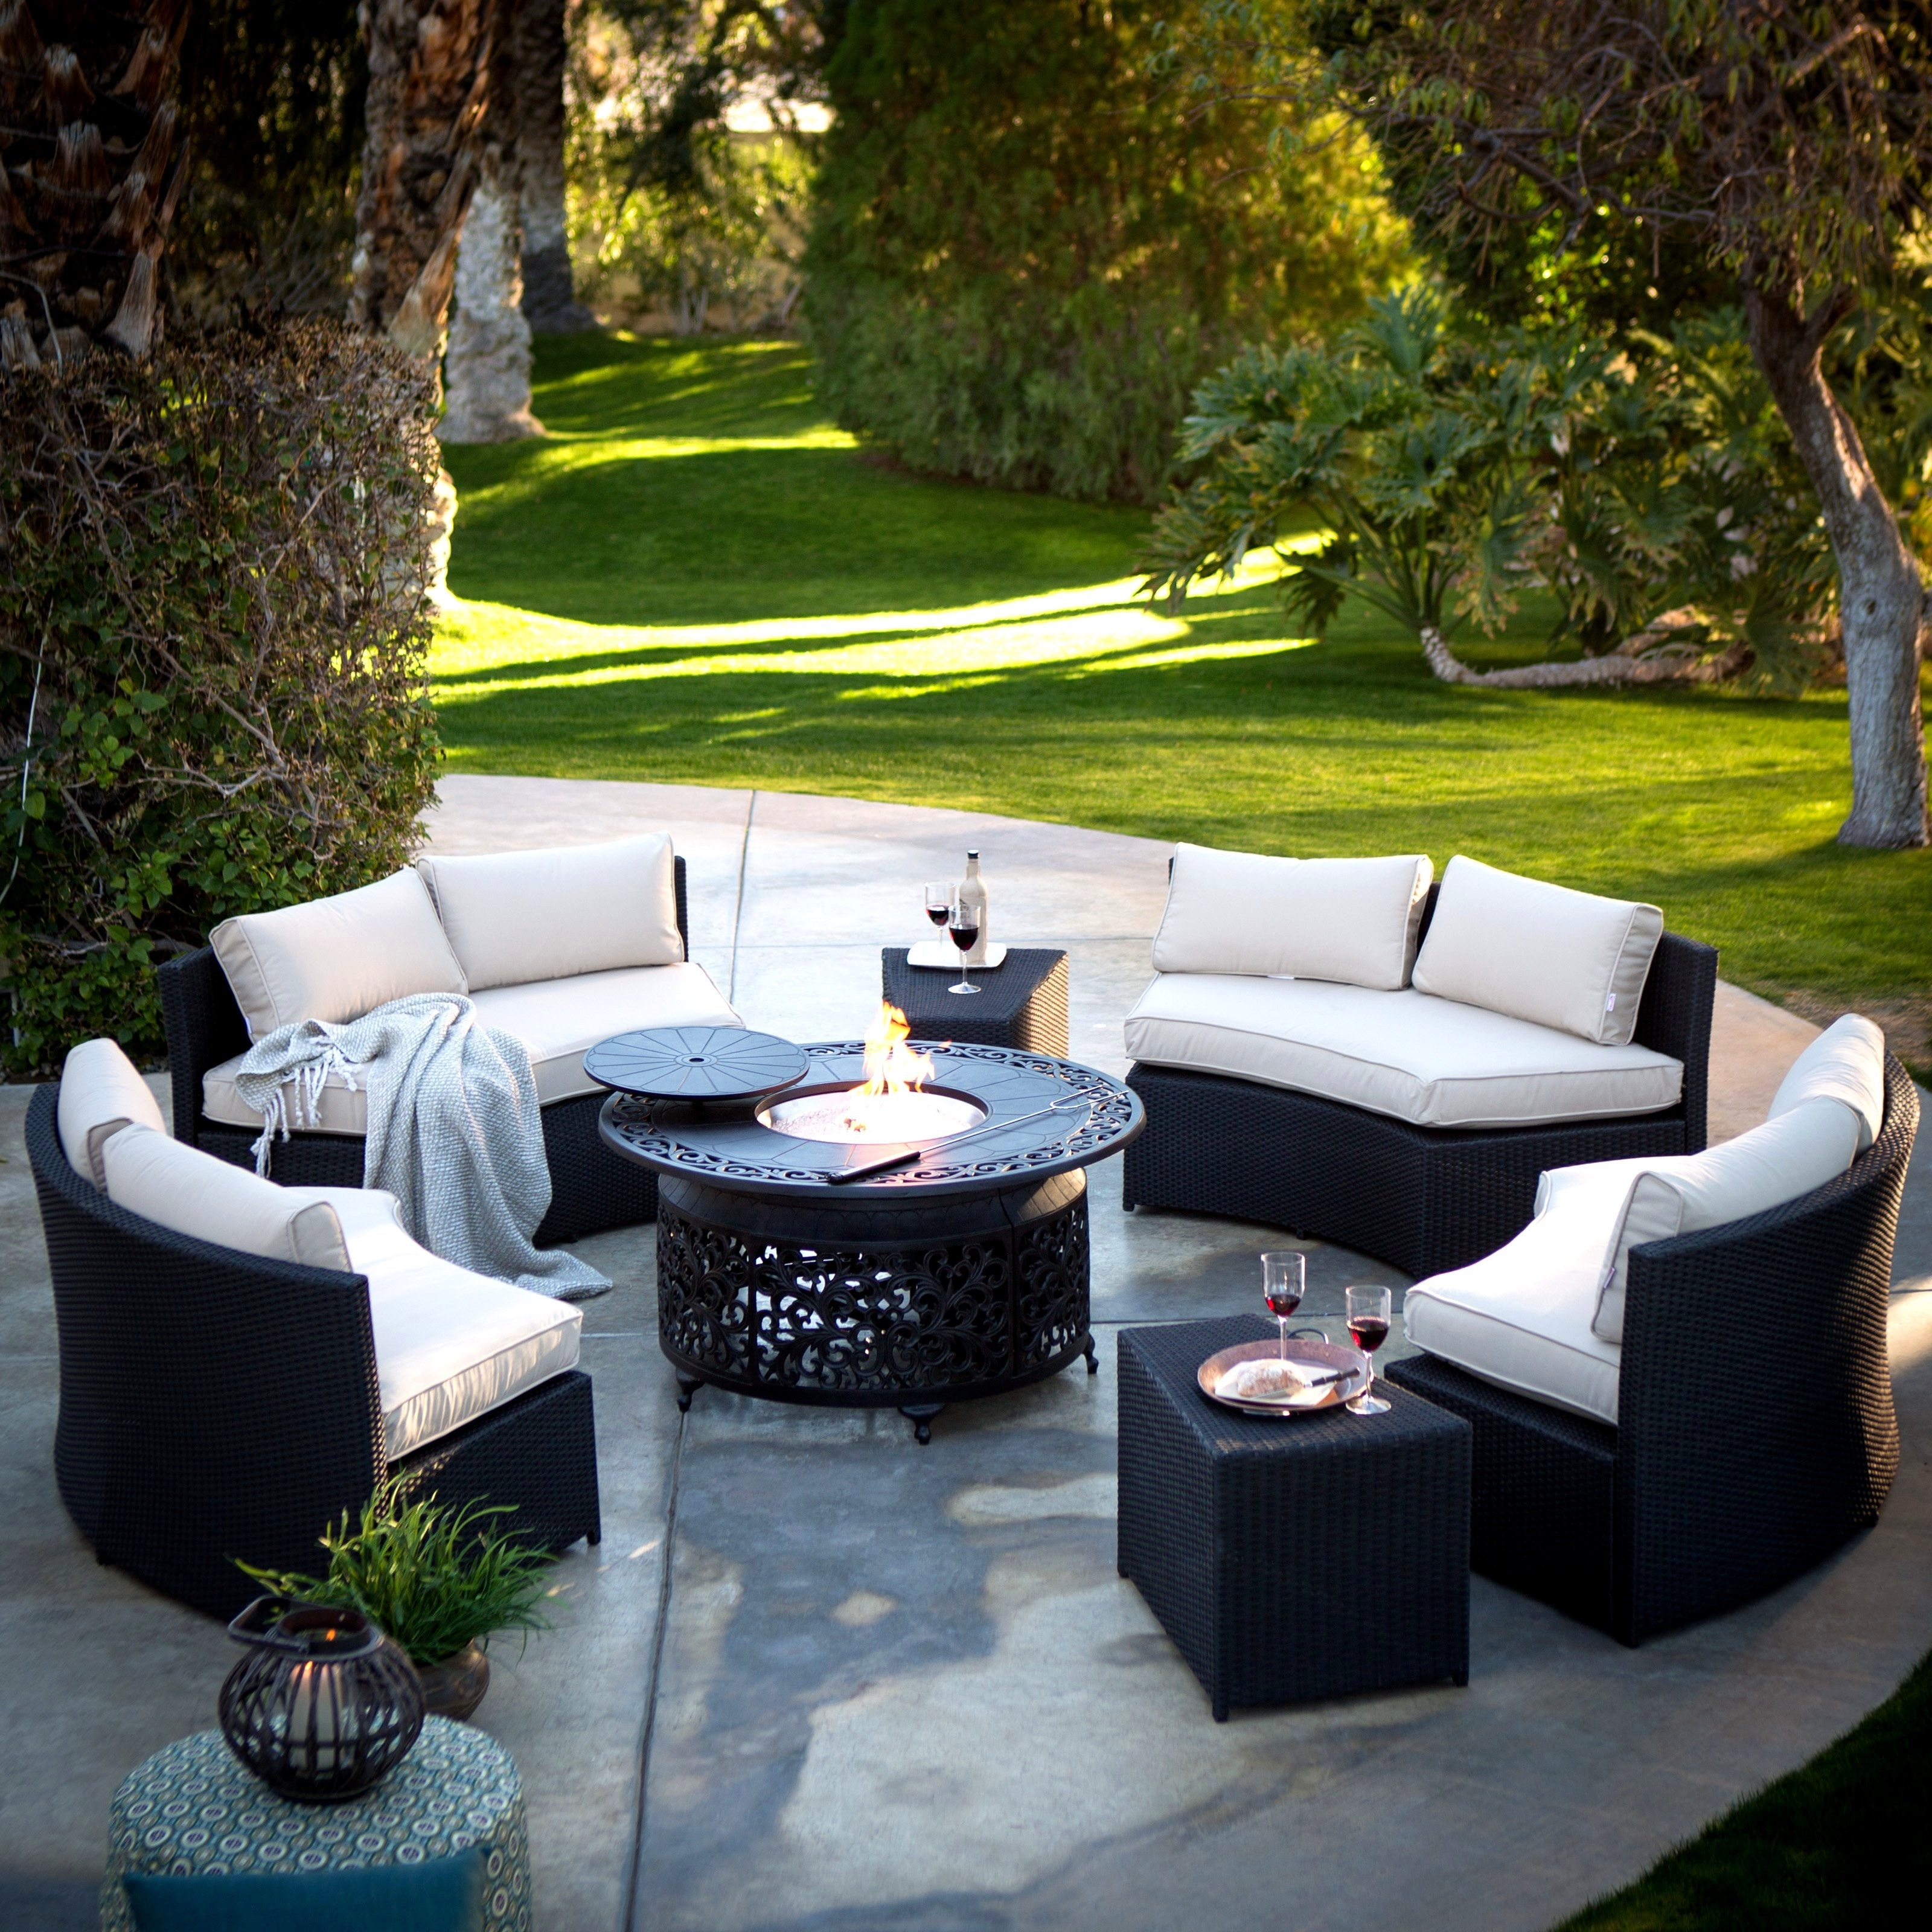 Outdoor Patio Furniture Conversation Sets Within Most Up To Date 30 Luxury Patio Conversation Sets Clearance Scheme – Onionskeen (View 12 of 15)